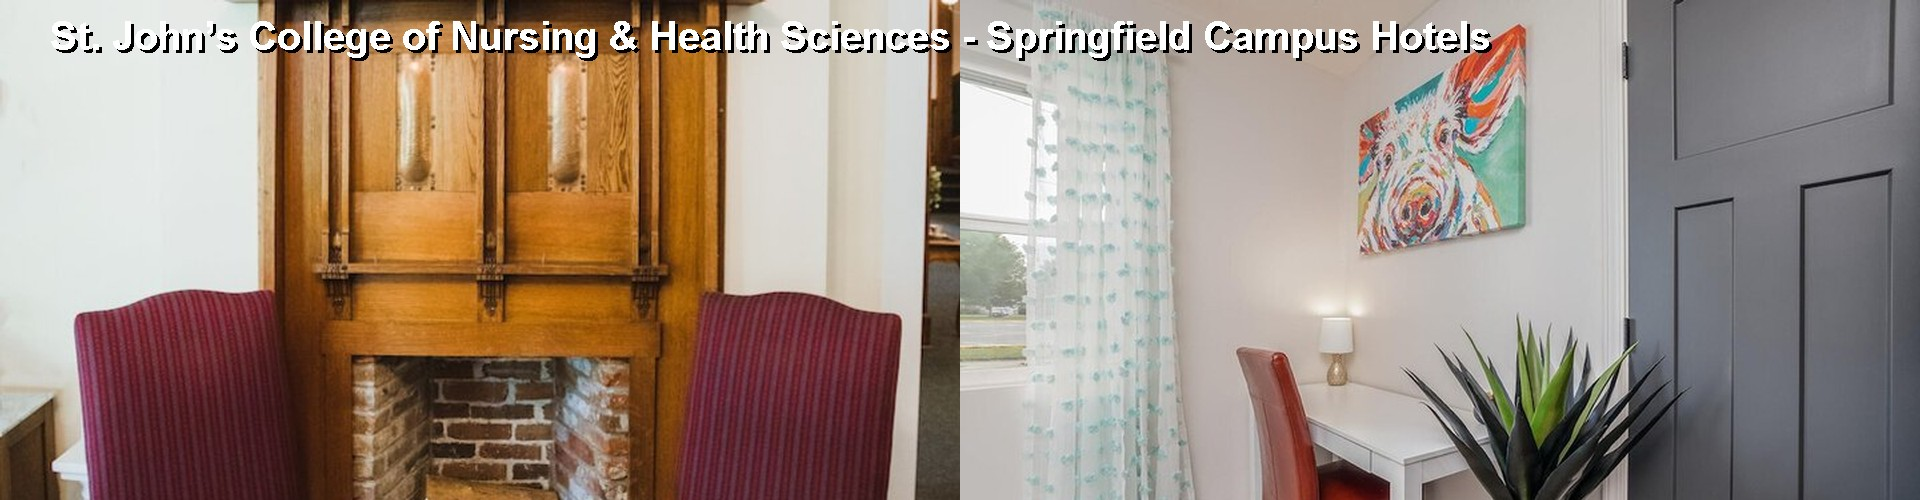 5 Best Hotels near St. John's College of Nursing & Health Sciences - Springfield Campus